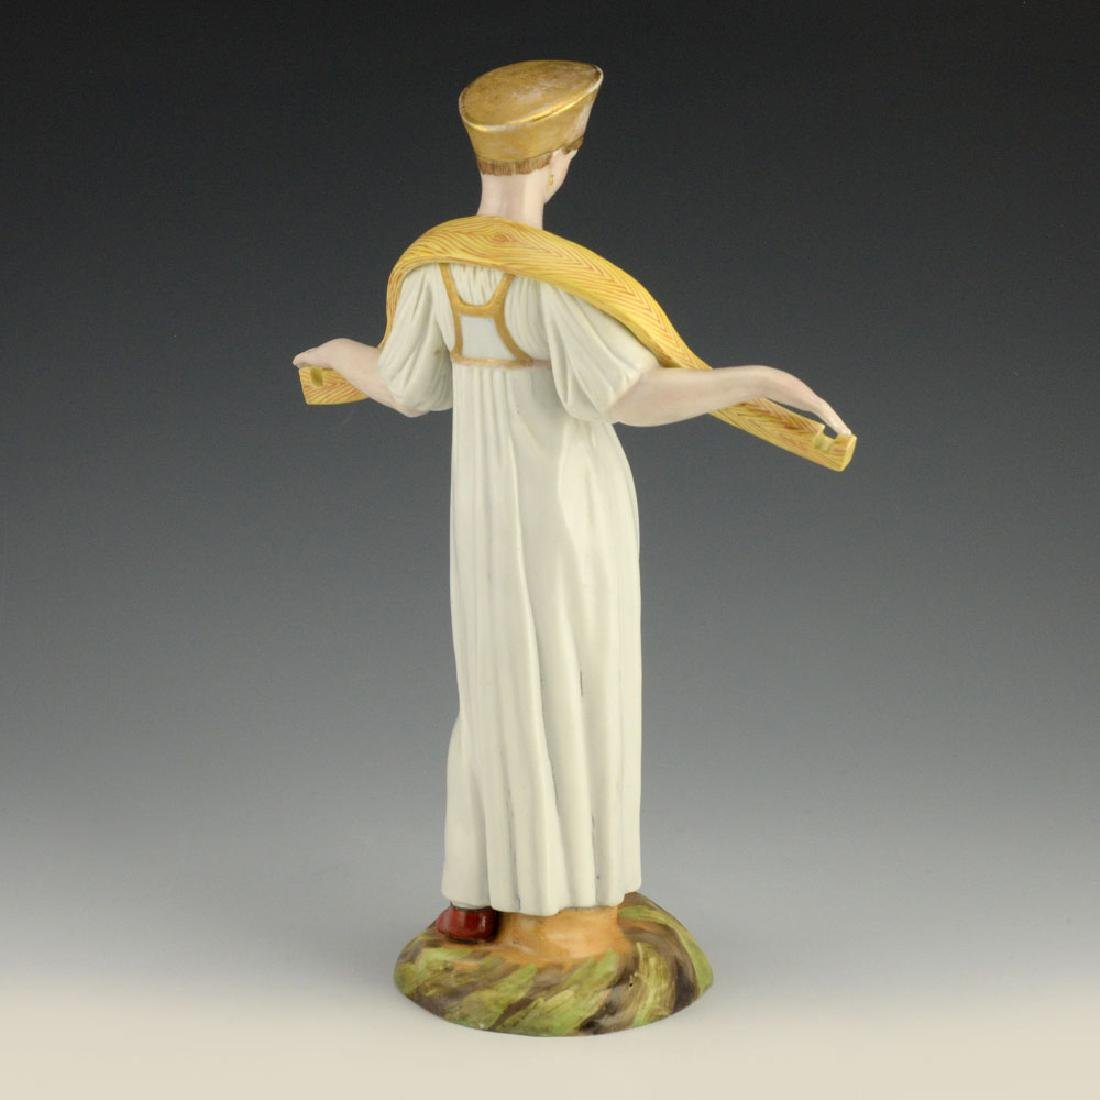 A Russian Gardner Porcelain Water Carrier Woman Statue - 3